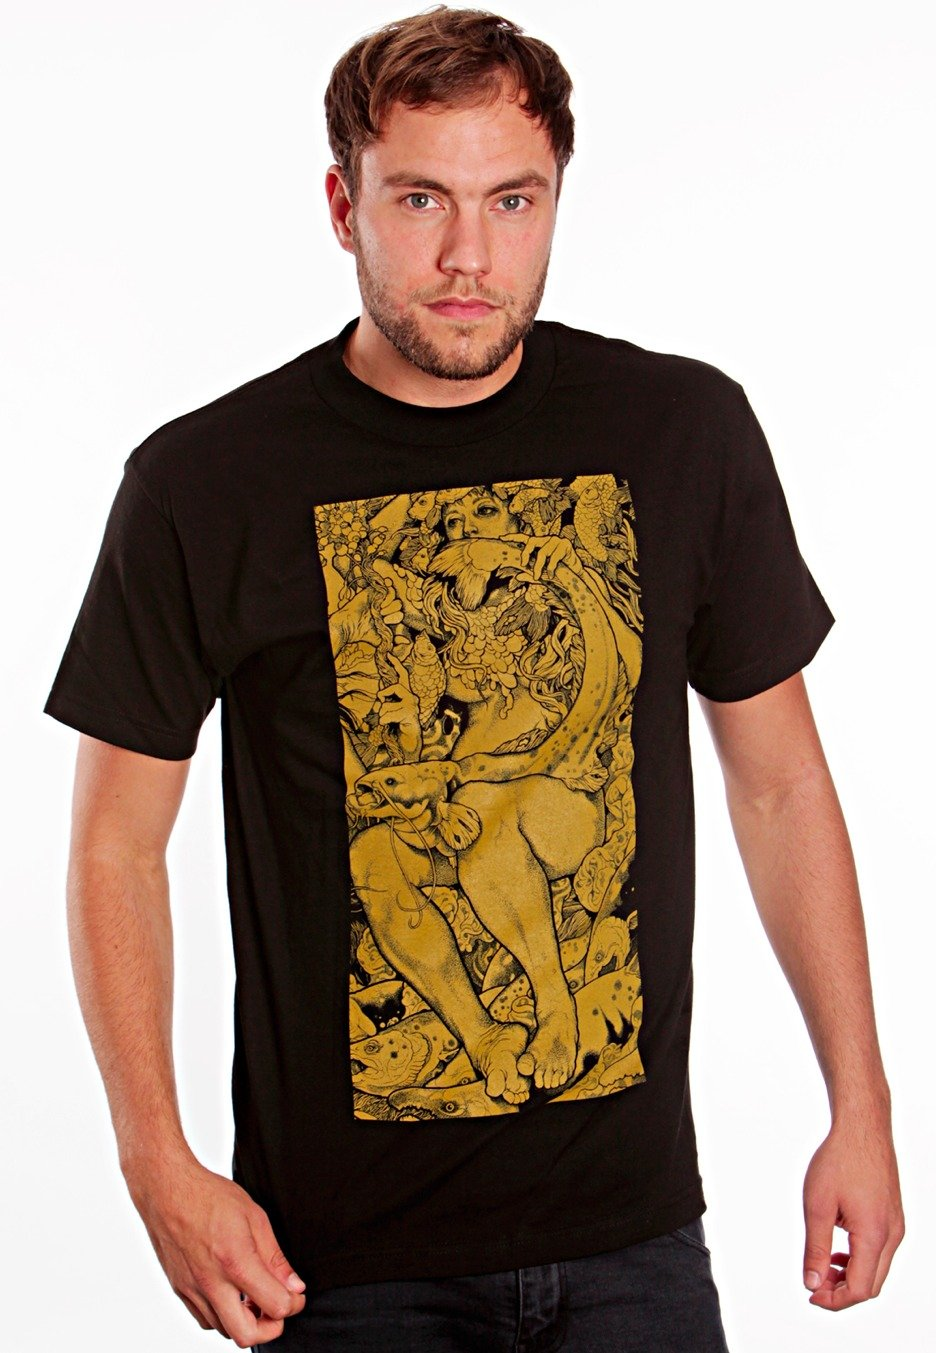 Baroness - Blue Record Gold - T-Shirt - Impericon.com ...